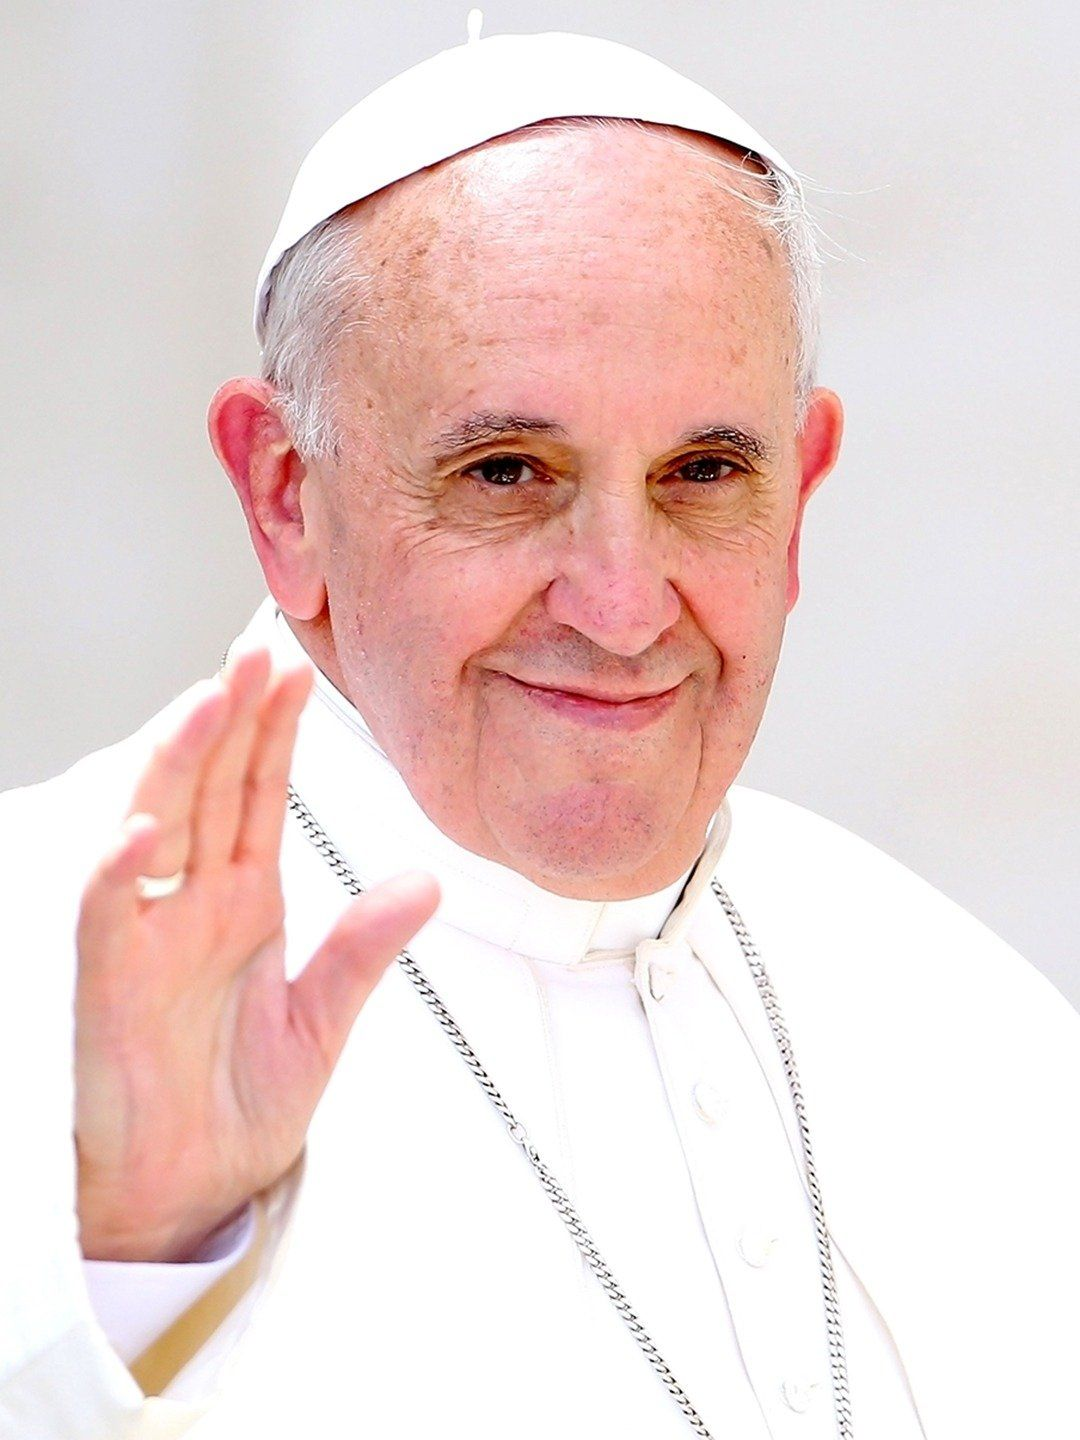 Current Pope Roman Catholic Church Roman Catholic Pope Francis